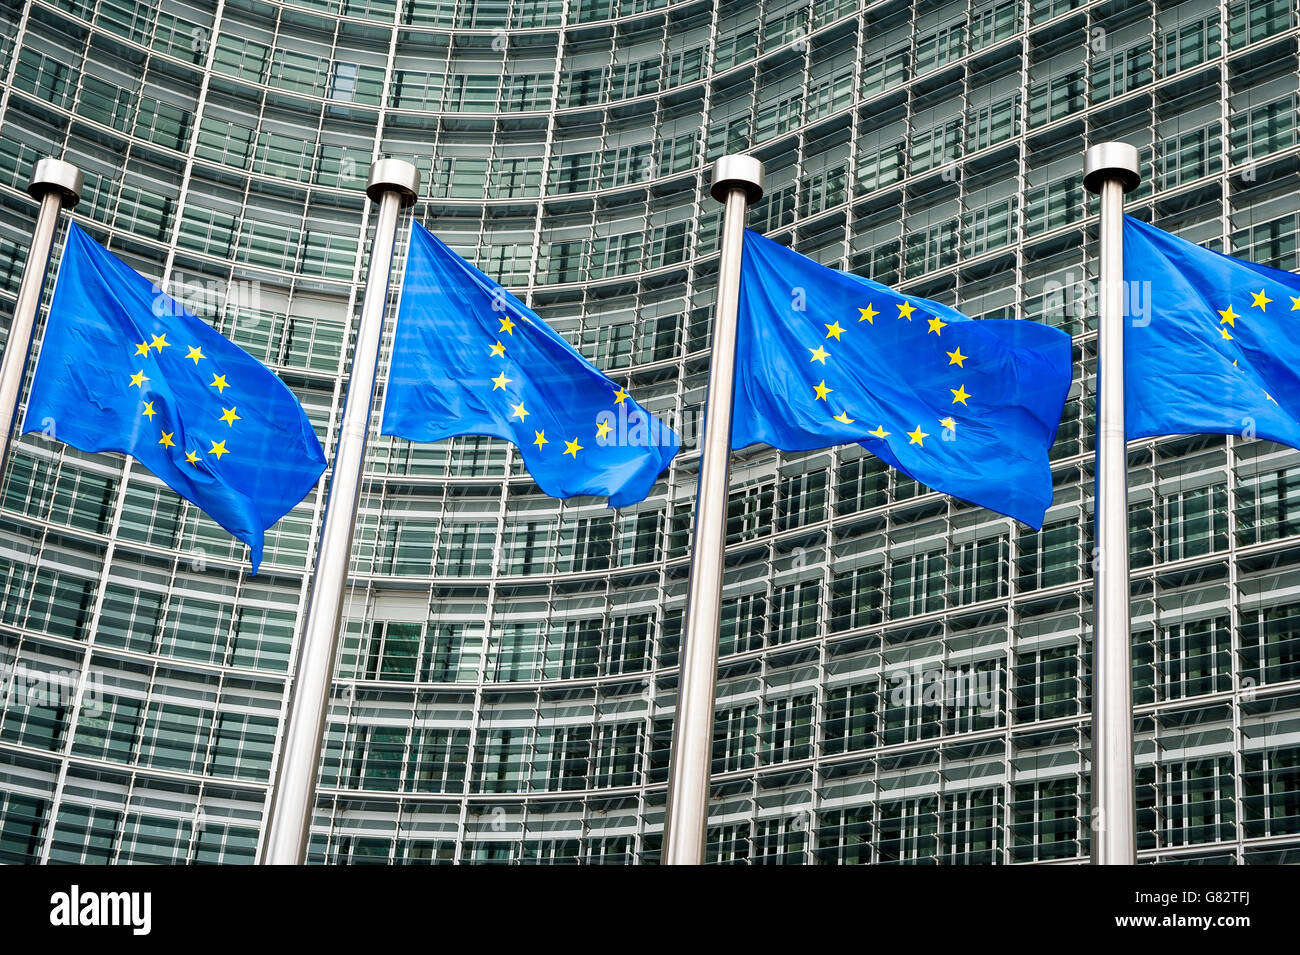 Row of EU European Union flags flying in front of administrative building at the EU headquarters in Brussels, Belgium - Stock Image